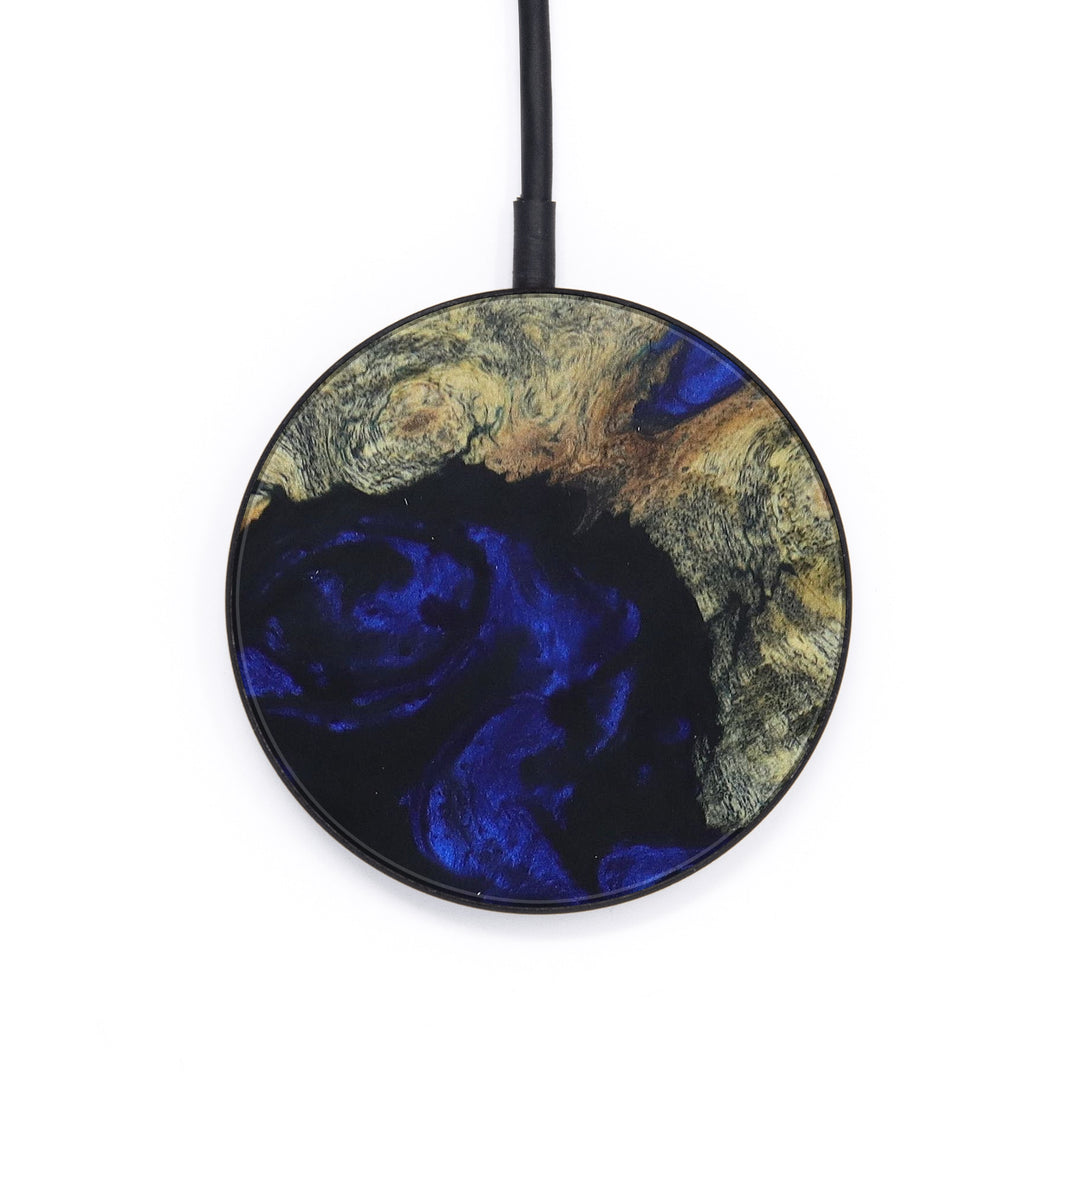 Circle Wood+Resin Wireless Charger - Gisela (Dark Blue, 393328)